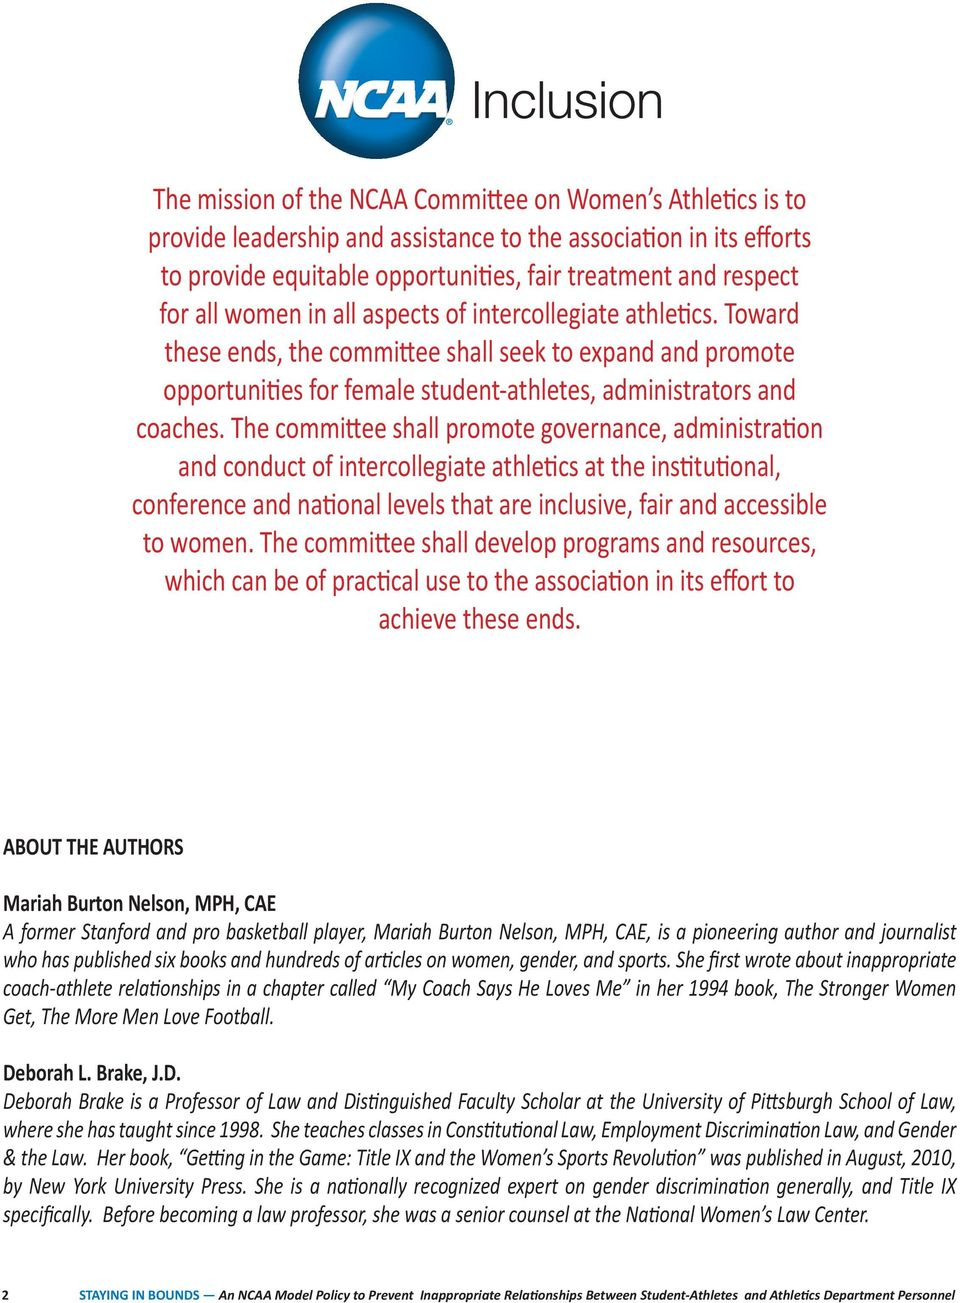 The committee shall promote governance, administration and conduct of intercollegiate athletics at the institutional, conference and national levels that are inclusive, fair and accessible to women.